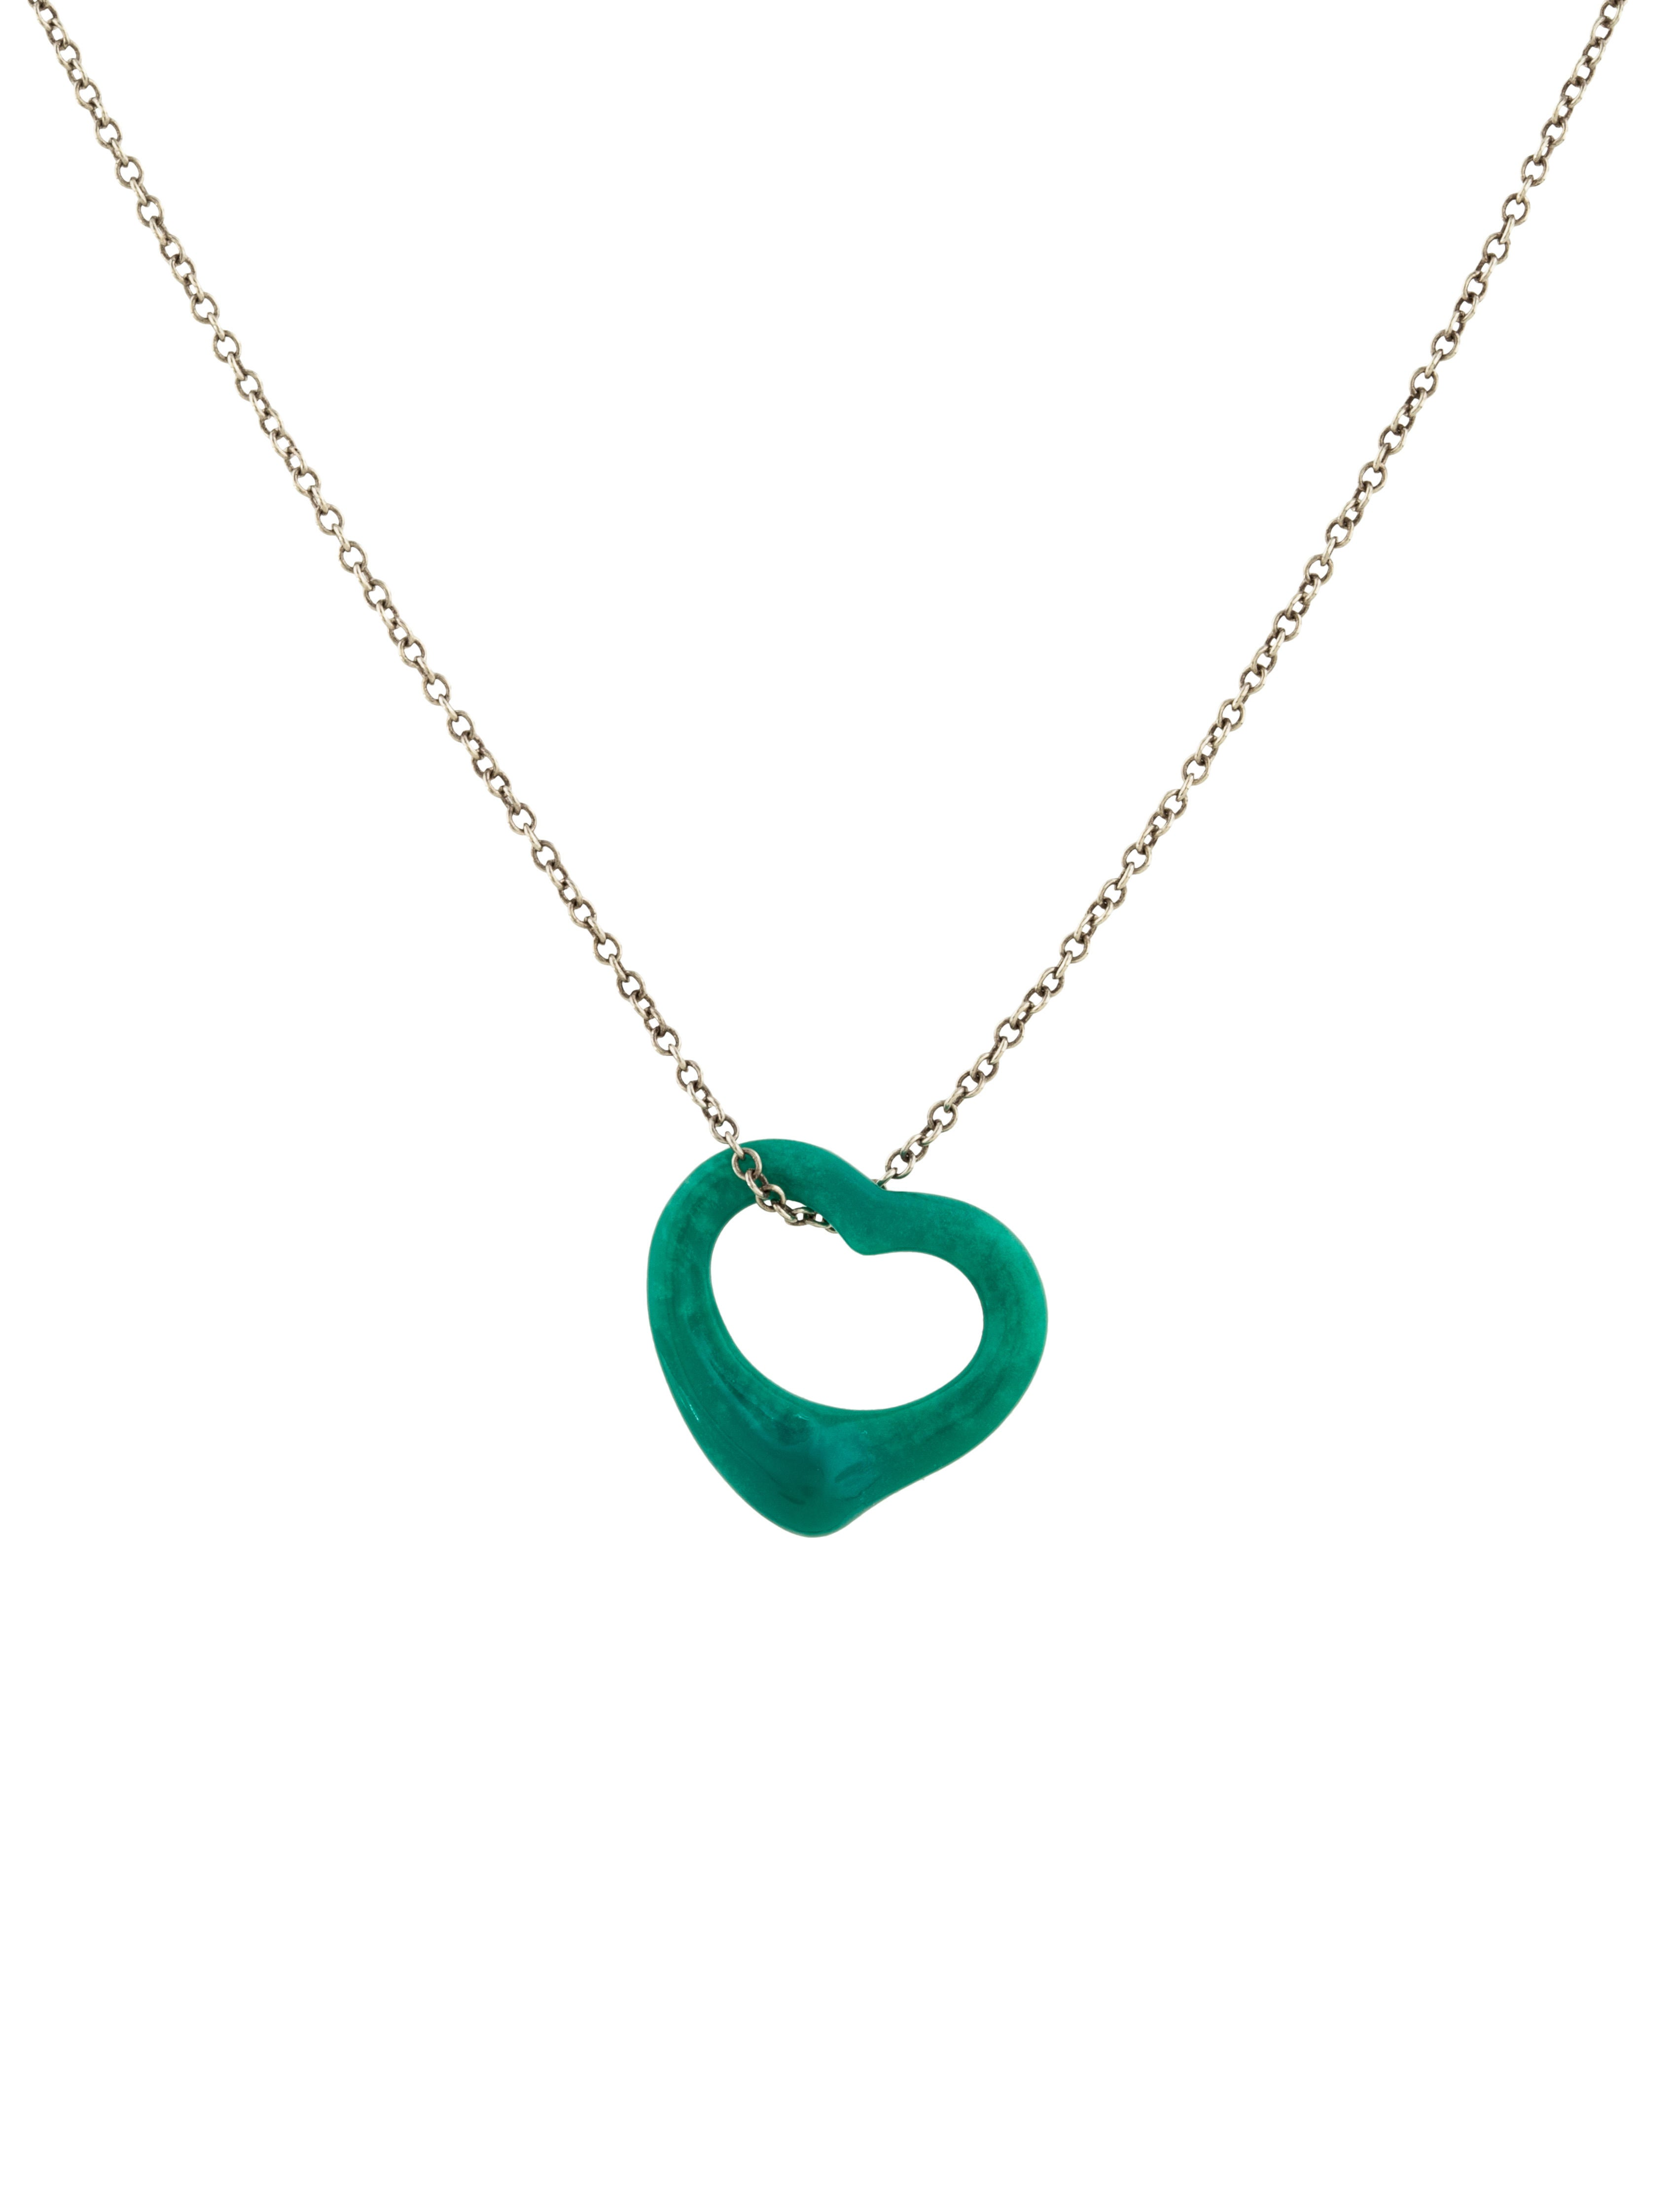 necklaces enlarged necklace clasp collar products jewelry heart the co tiffany open and